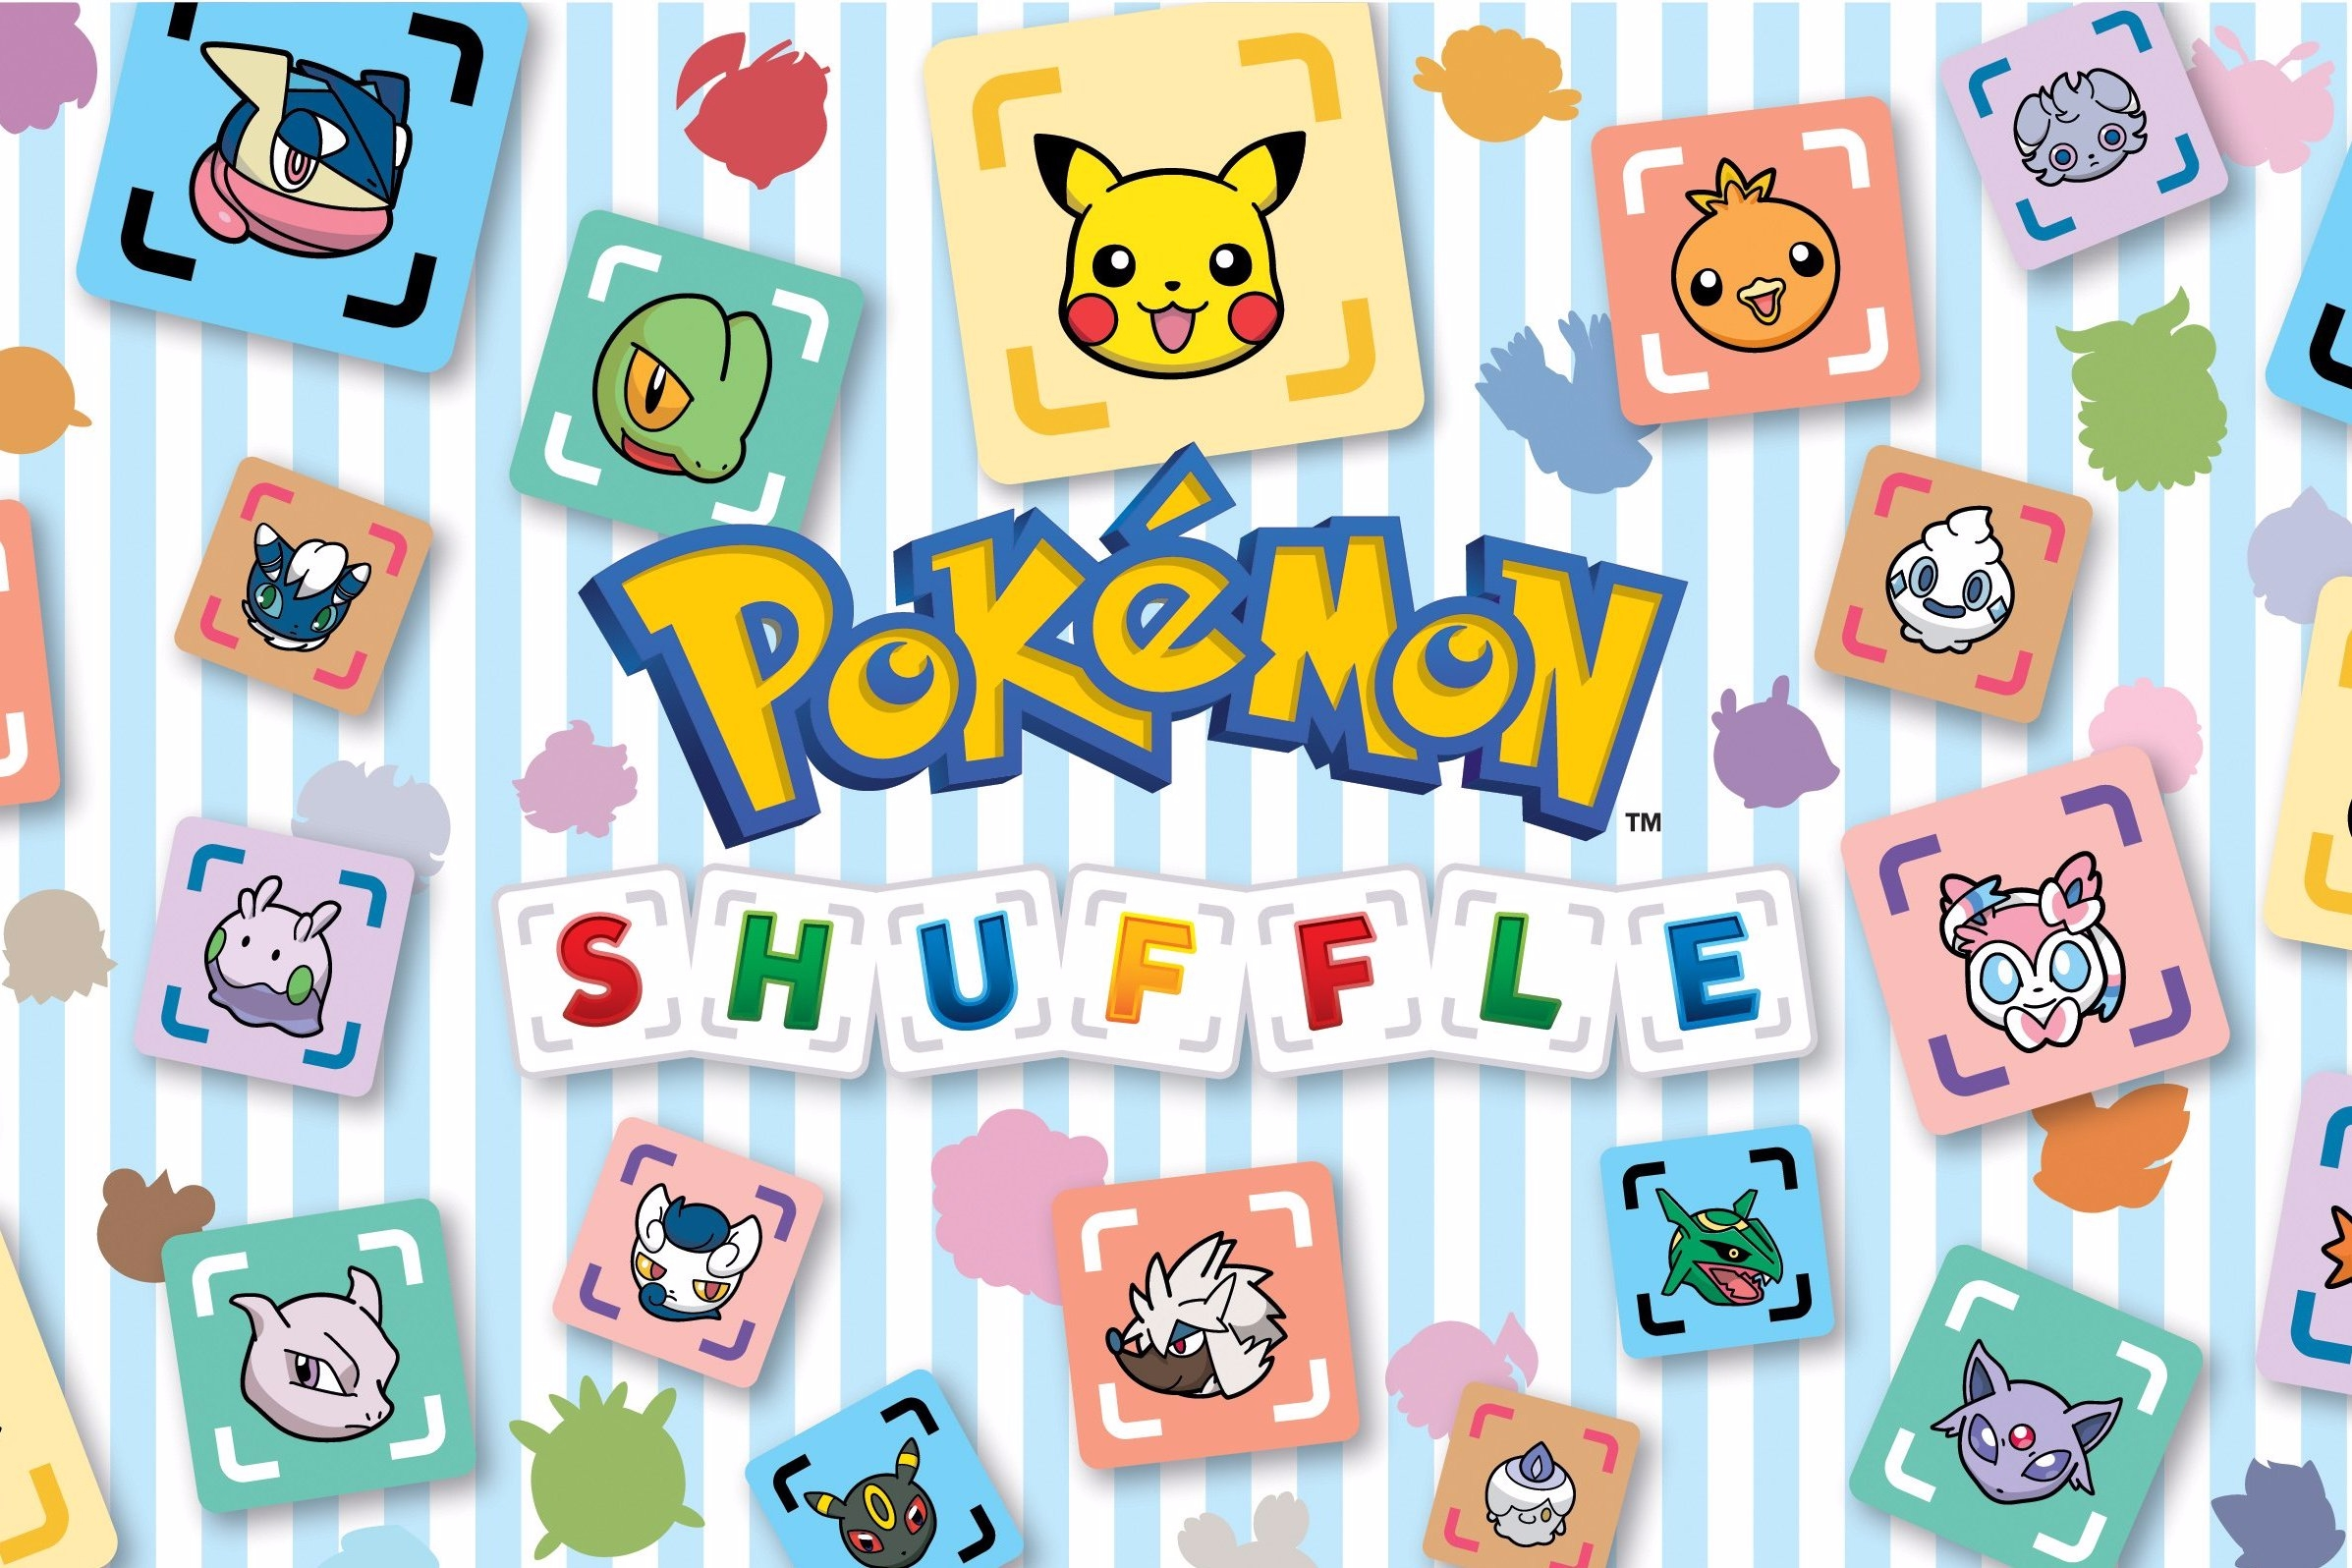 Modojo | Celebrate Pokémon Shuffle's 4 Million Downloads With New Shaymin Event